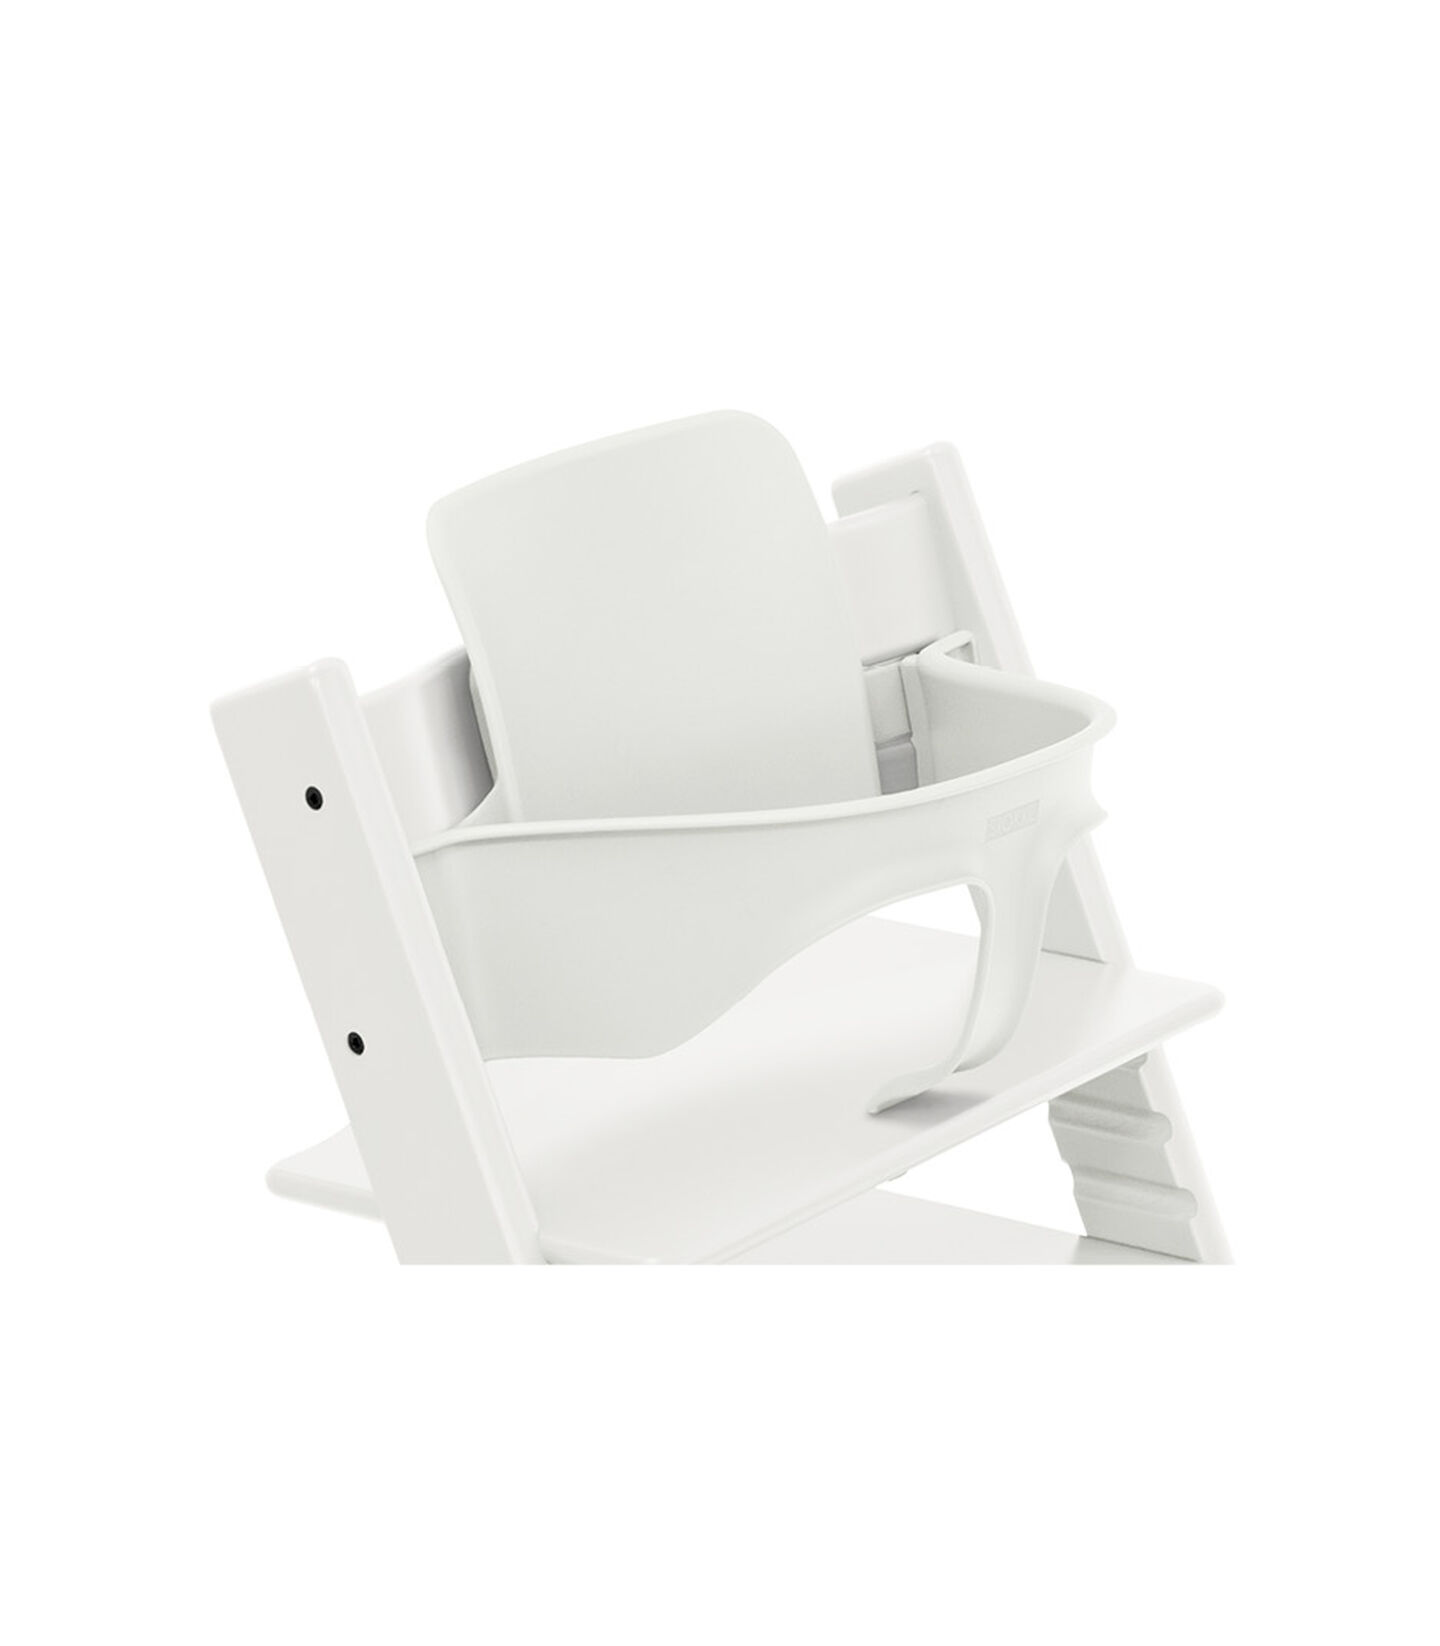 Tripp Trapp® Baby Set White, White, mainview view 2